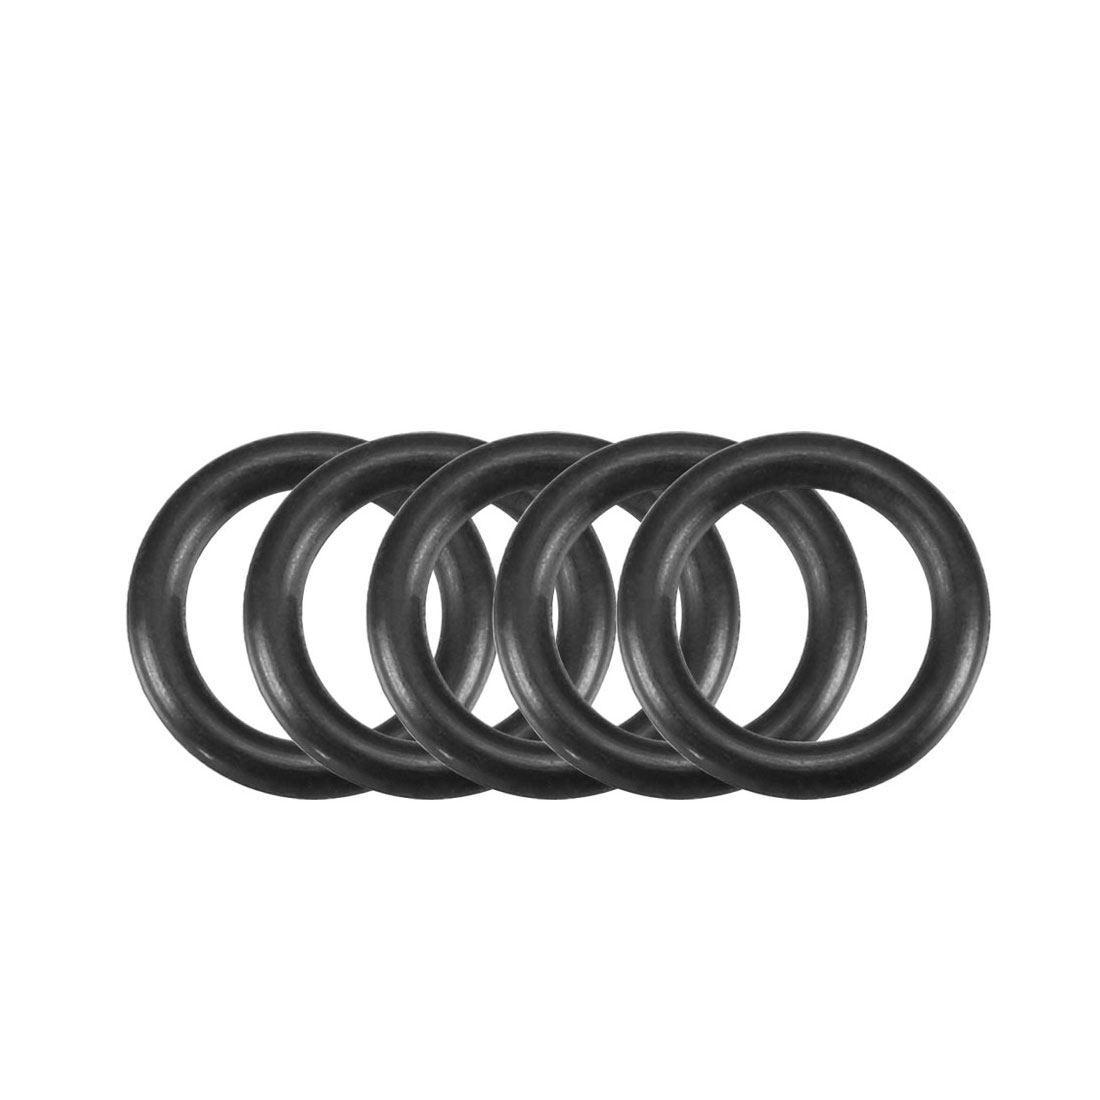 30Pcs Black 12mm Dia 2mm Thickness Nitrile Rubber O Ring NBR Sealing Grommets